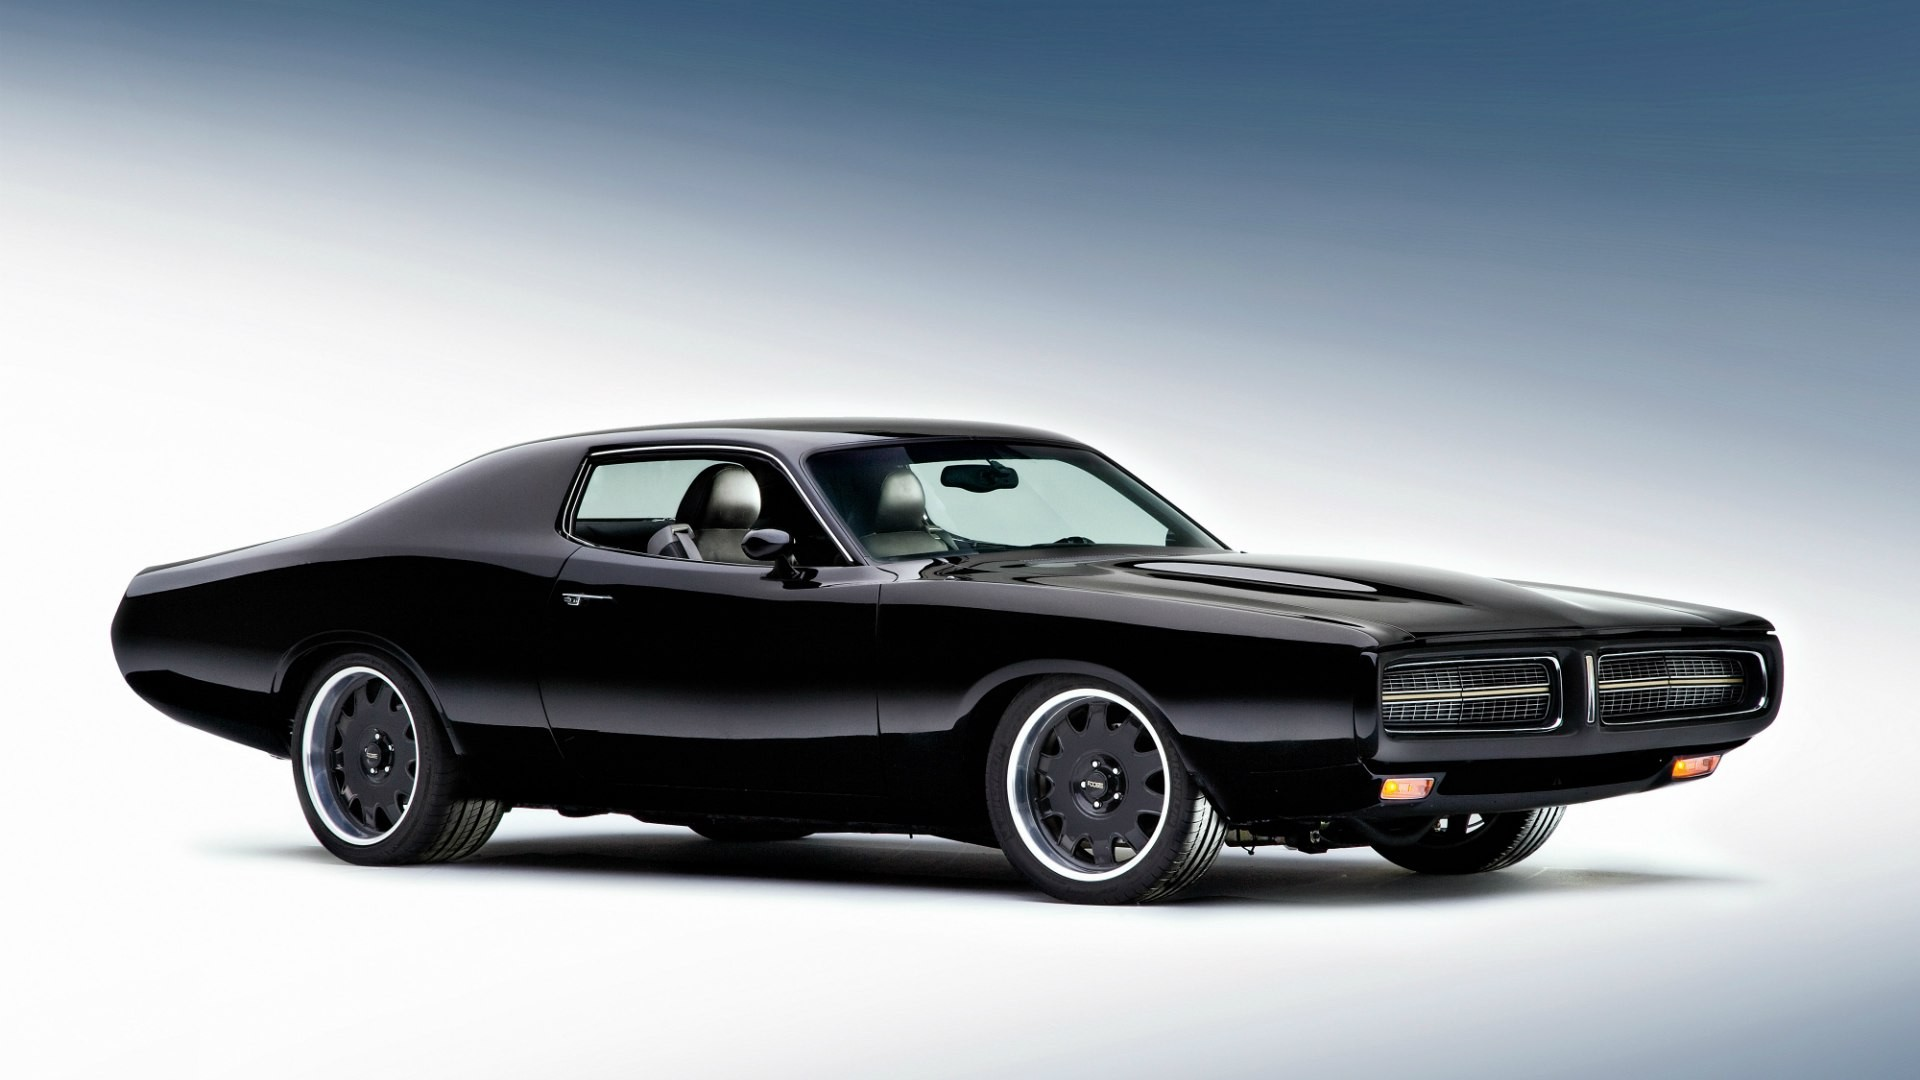 Wallpapers cars Ford Dodge muscle car 1920x1080